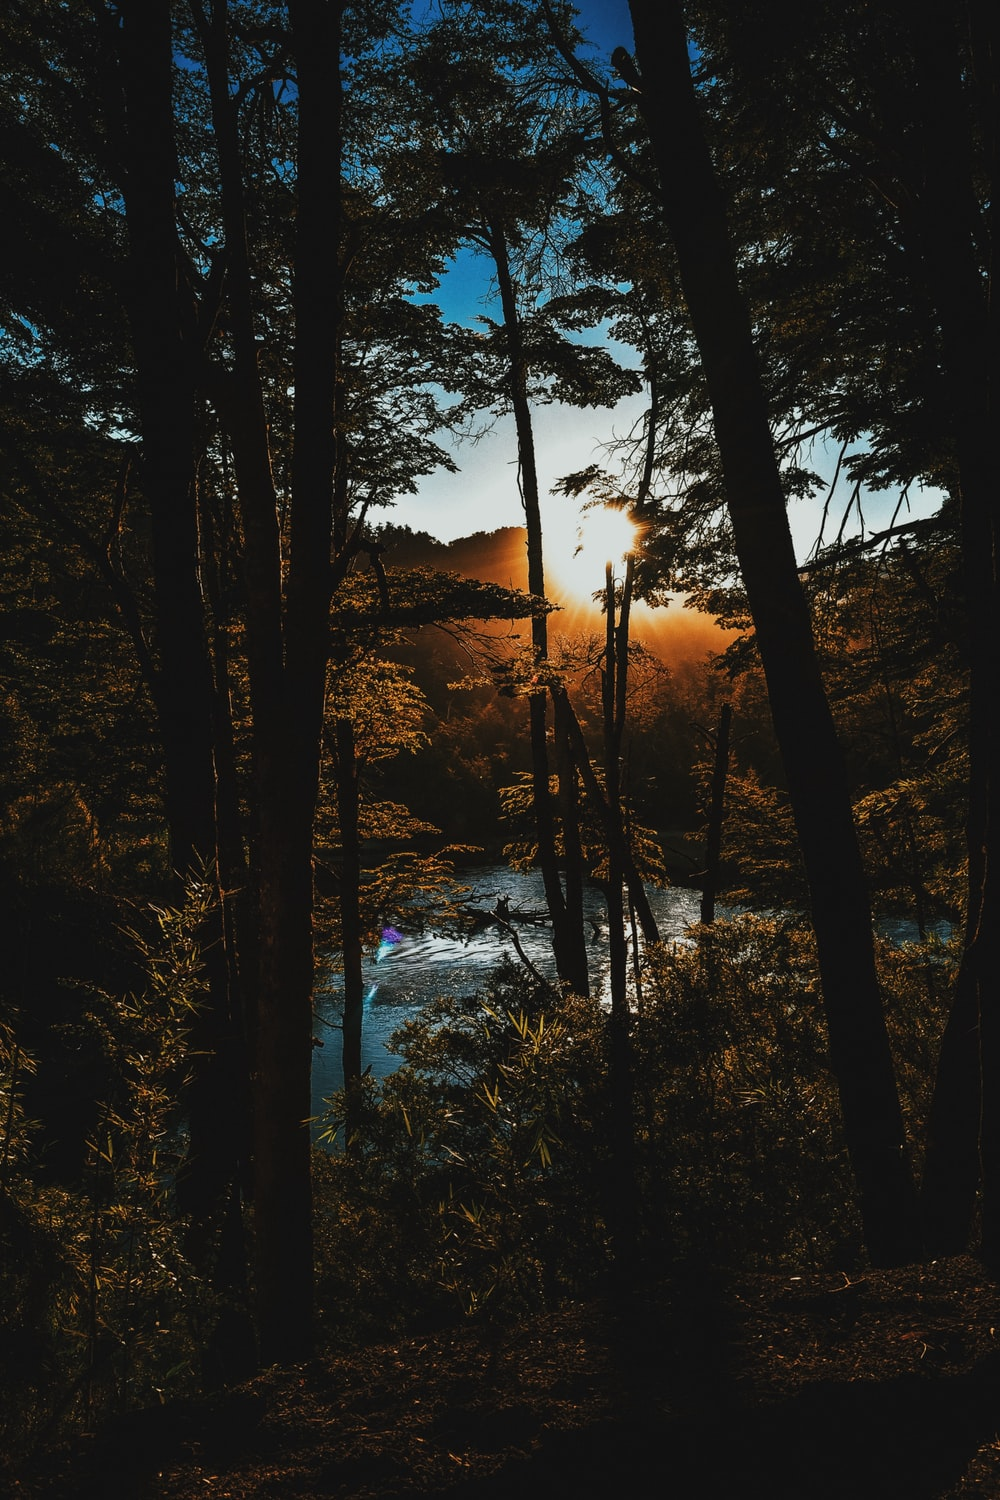 photo of forest near body of water during golden hour